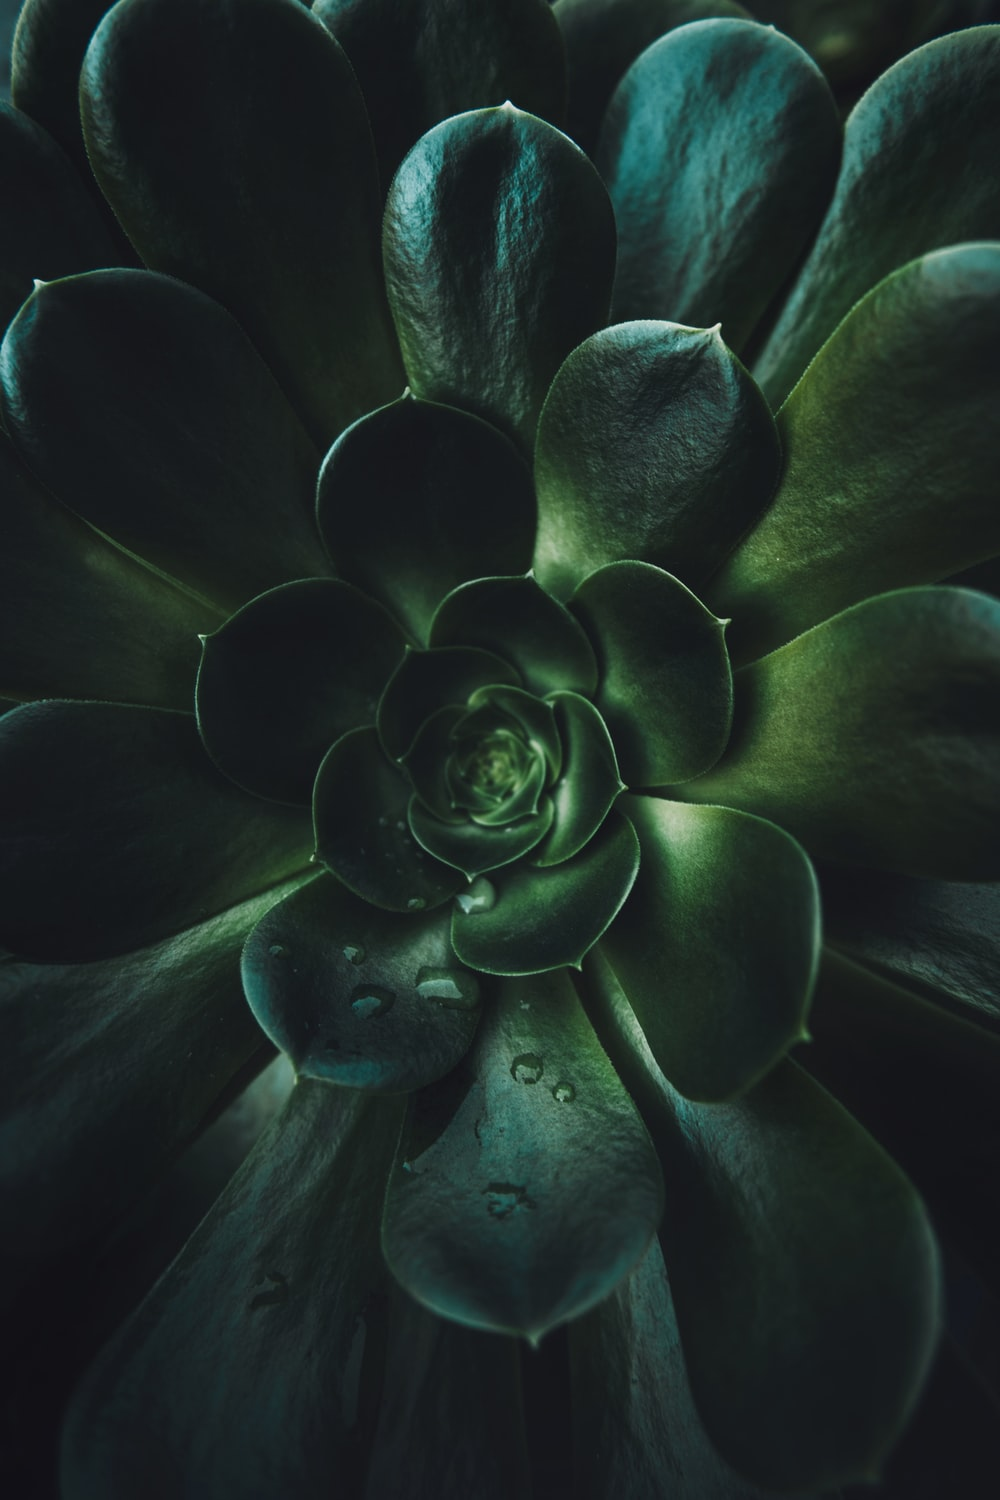 green and white flower in close up photography